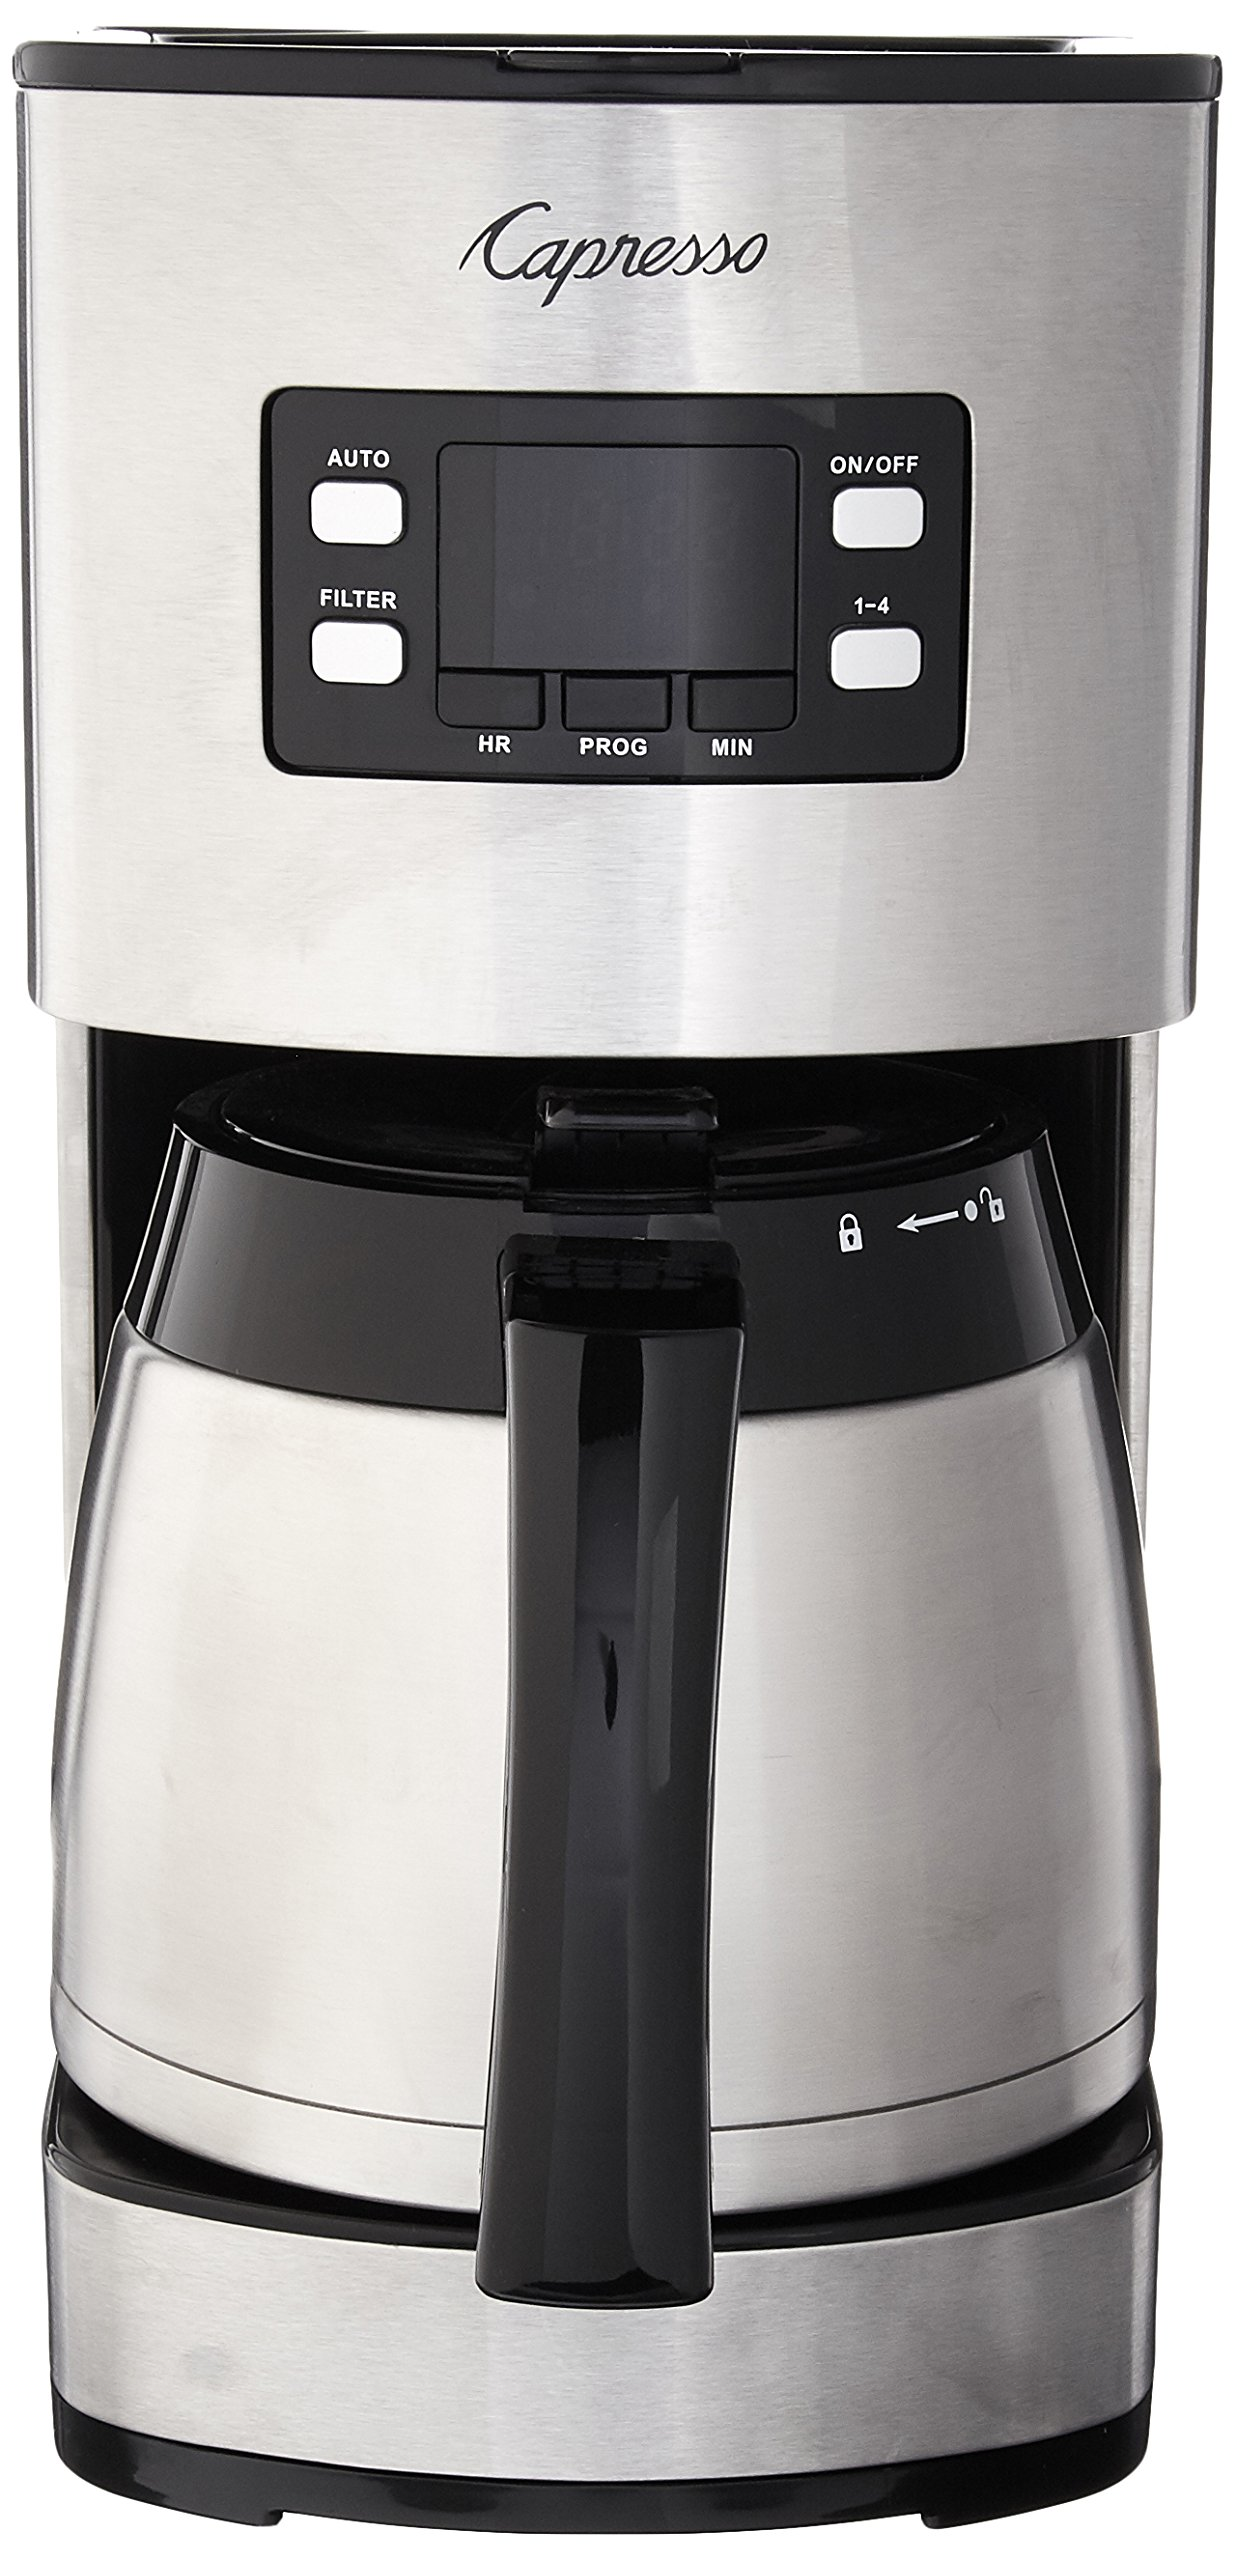 Capresso 435.05 10 Cup Thermal Coffee Maker ST300, Stainless Steel by Capresso